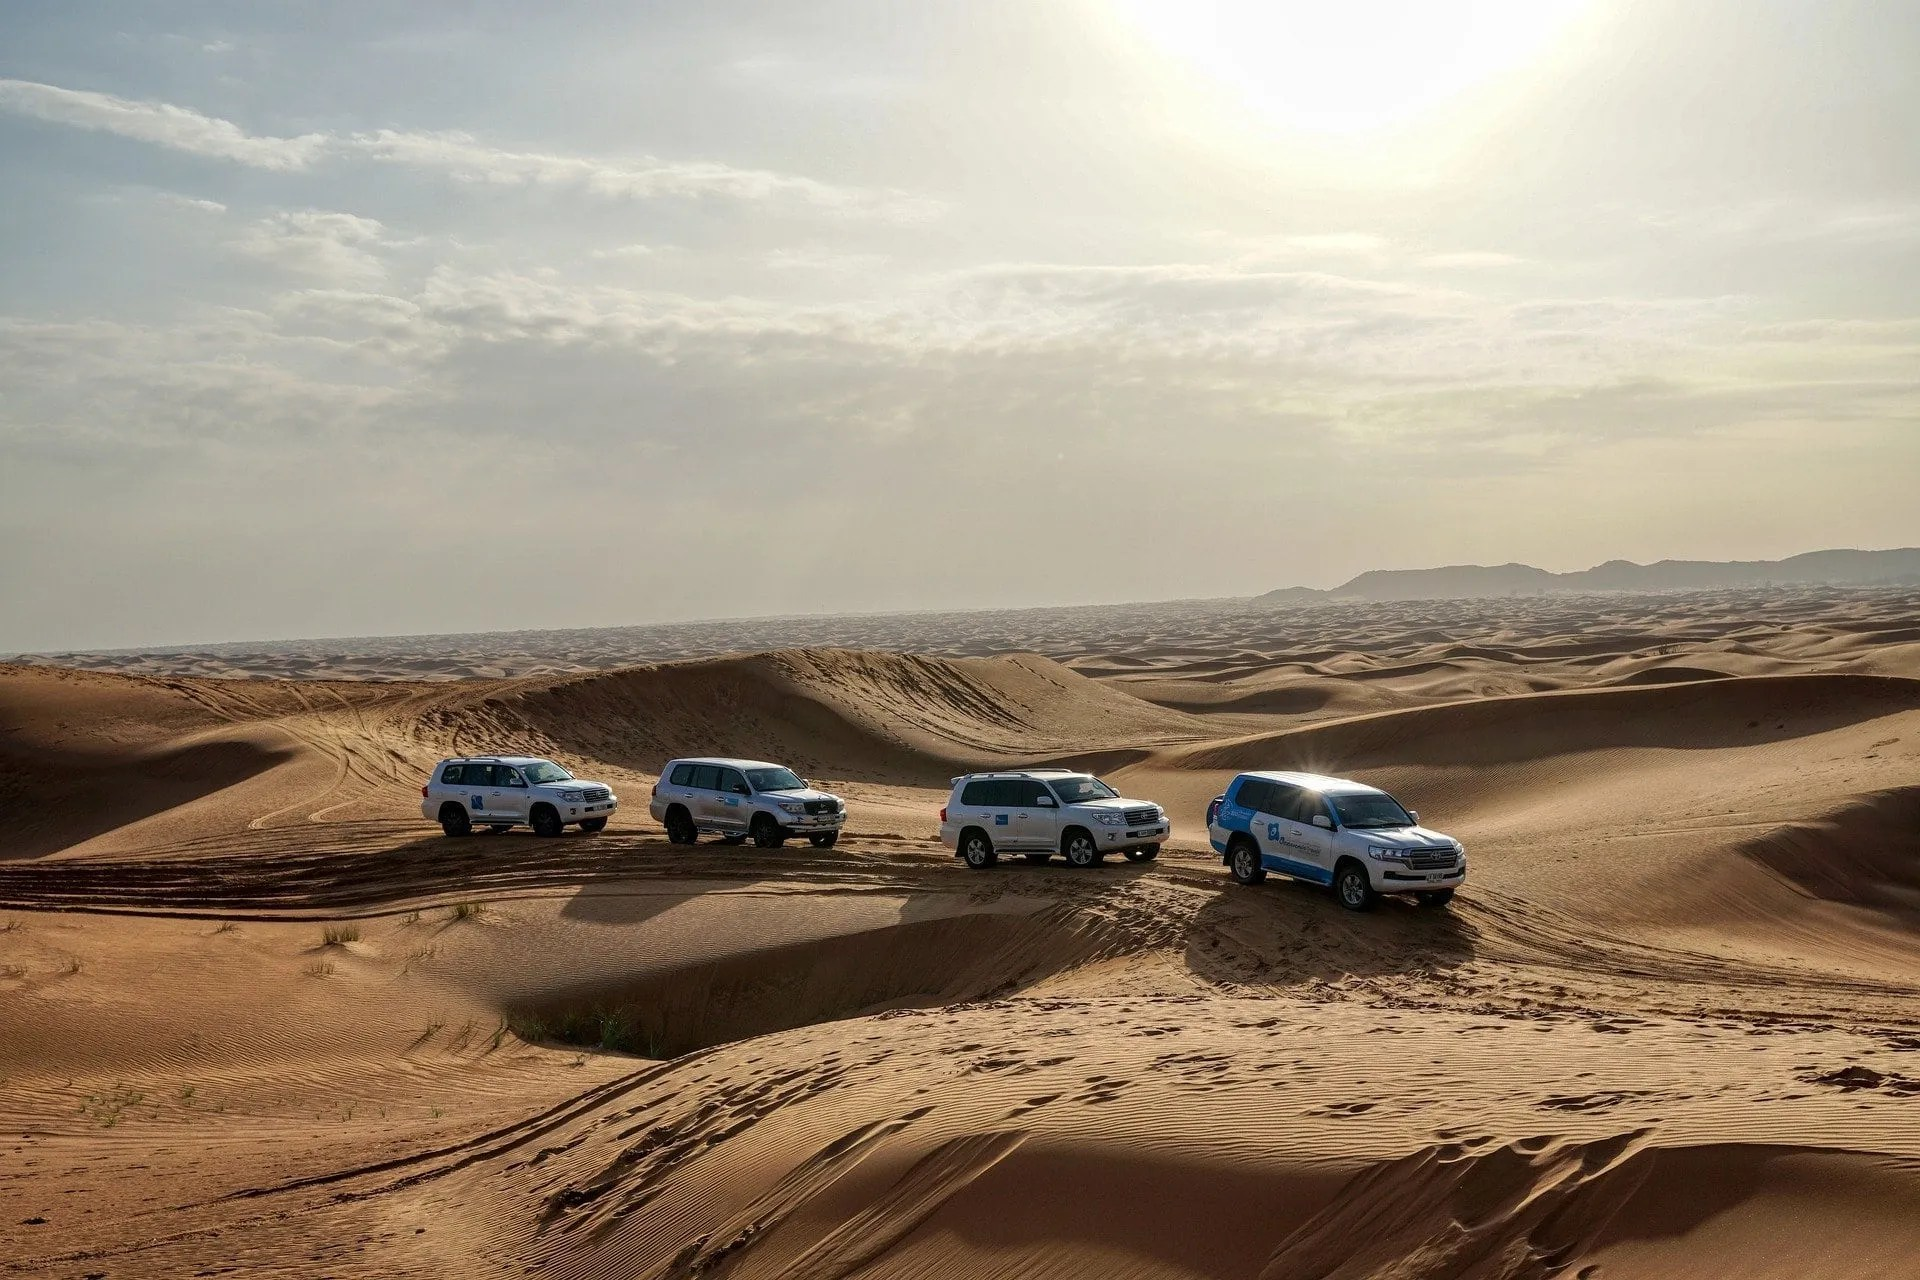 Sandboarding and dune bashing in Dubai: everything you need to know